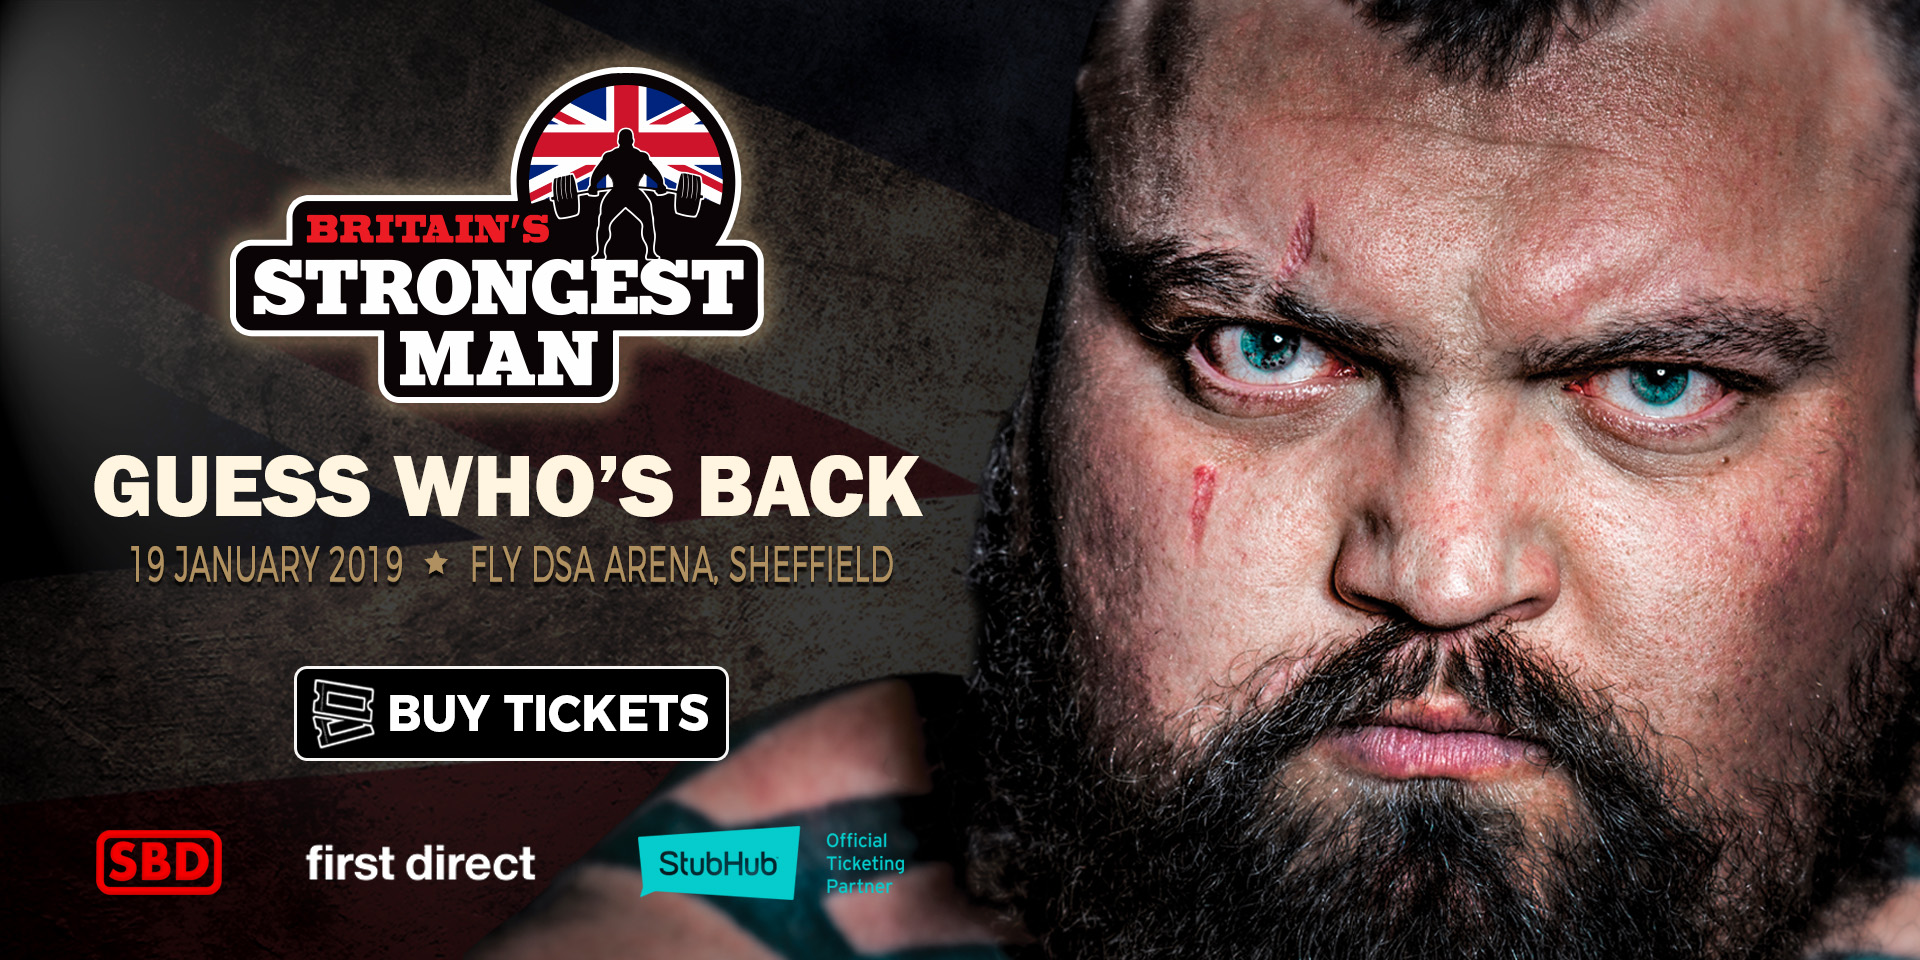 Eddie Hall returns to Sheffield Arena to claim his 5th Britain's Strongest Man title!